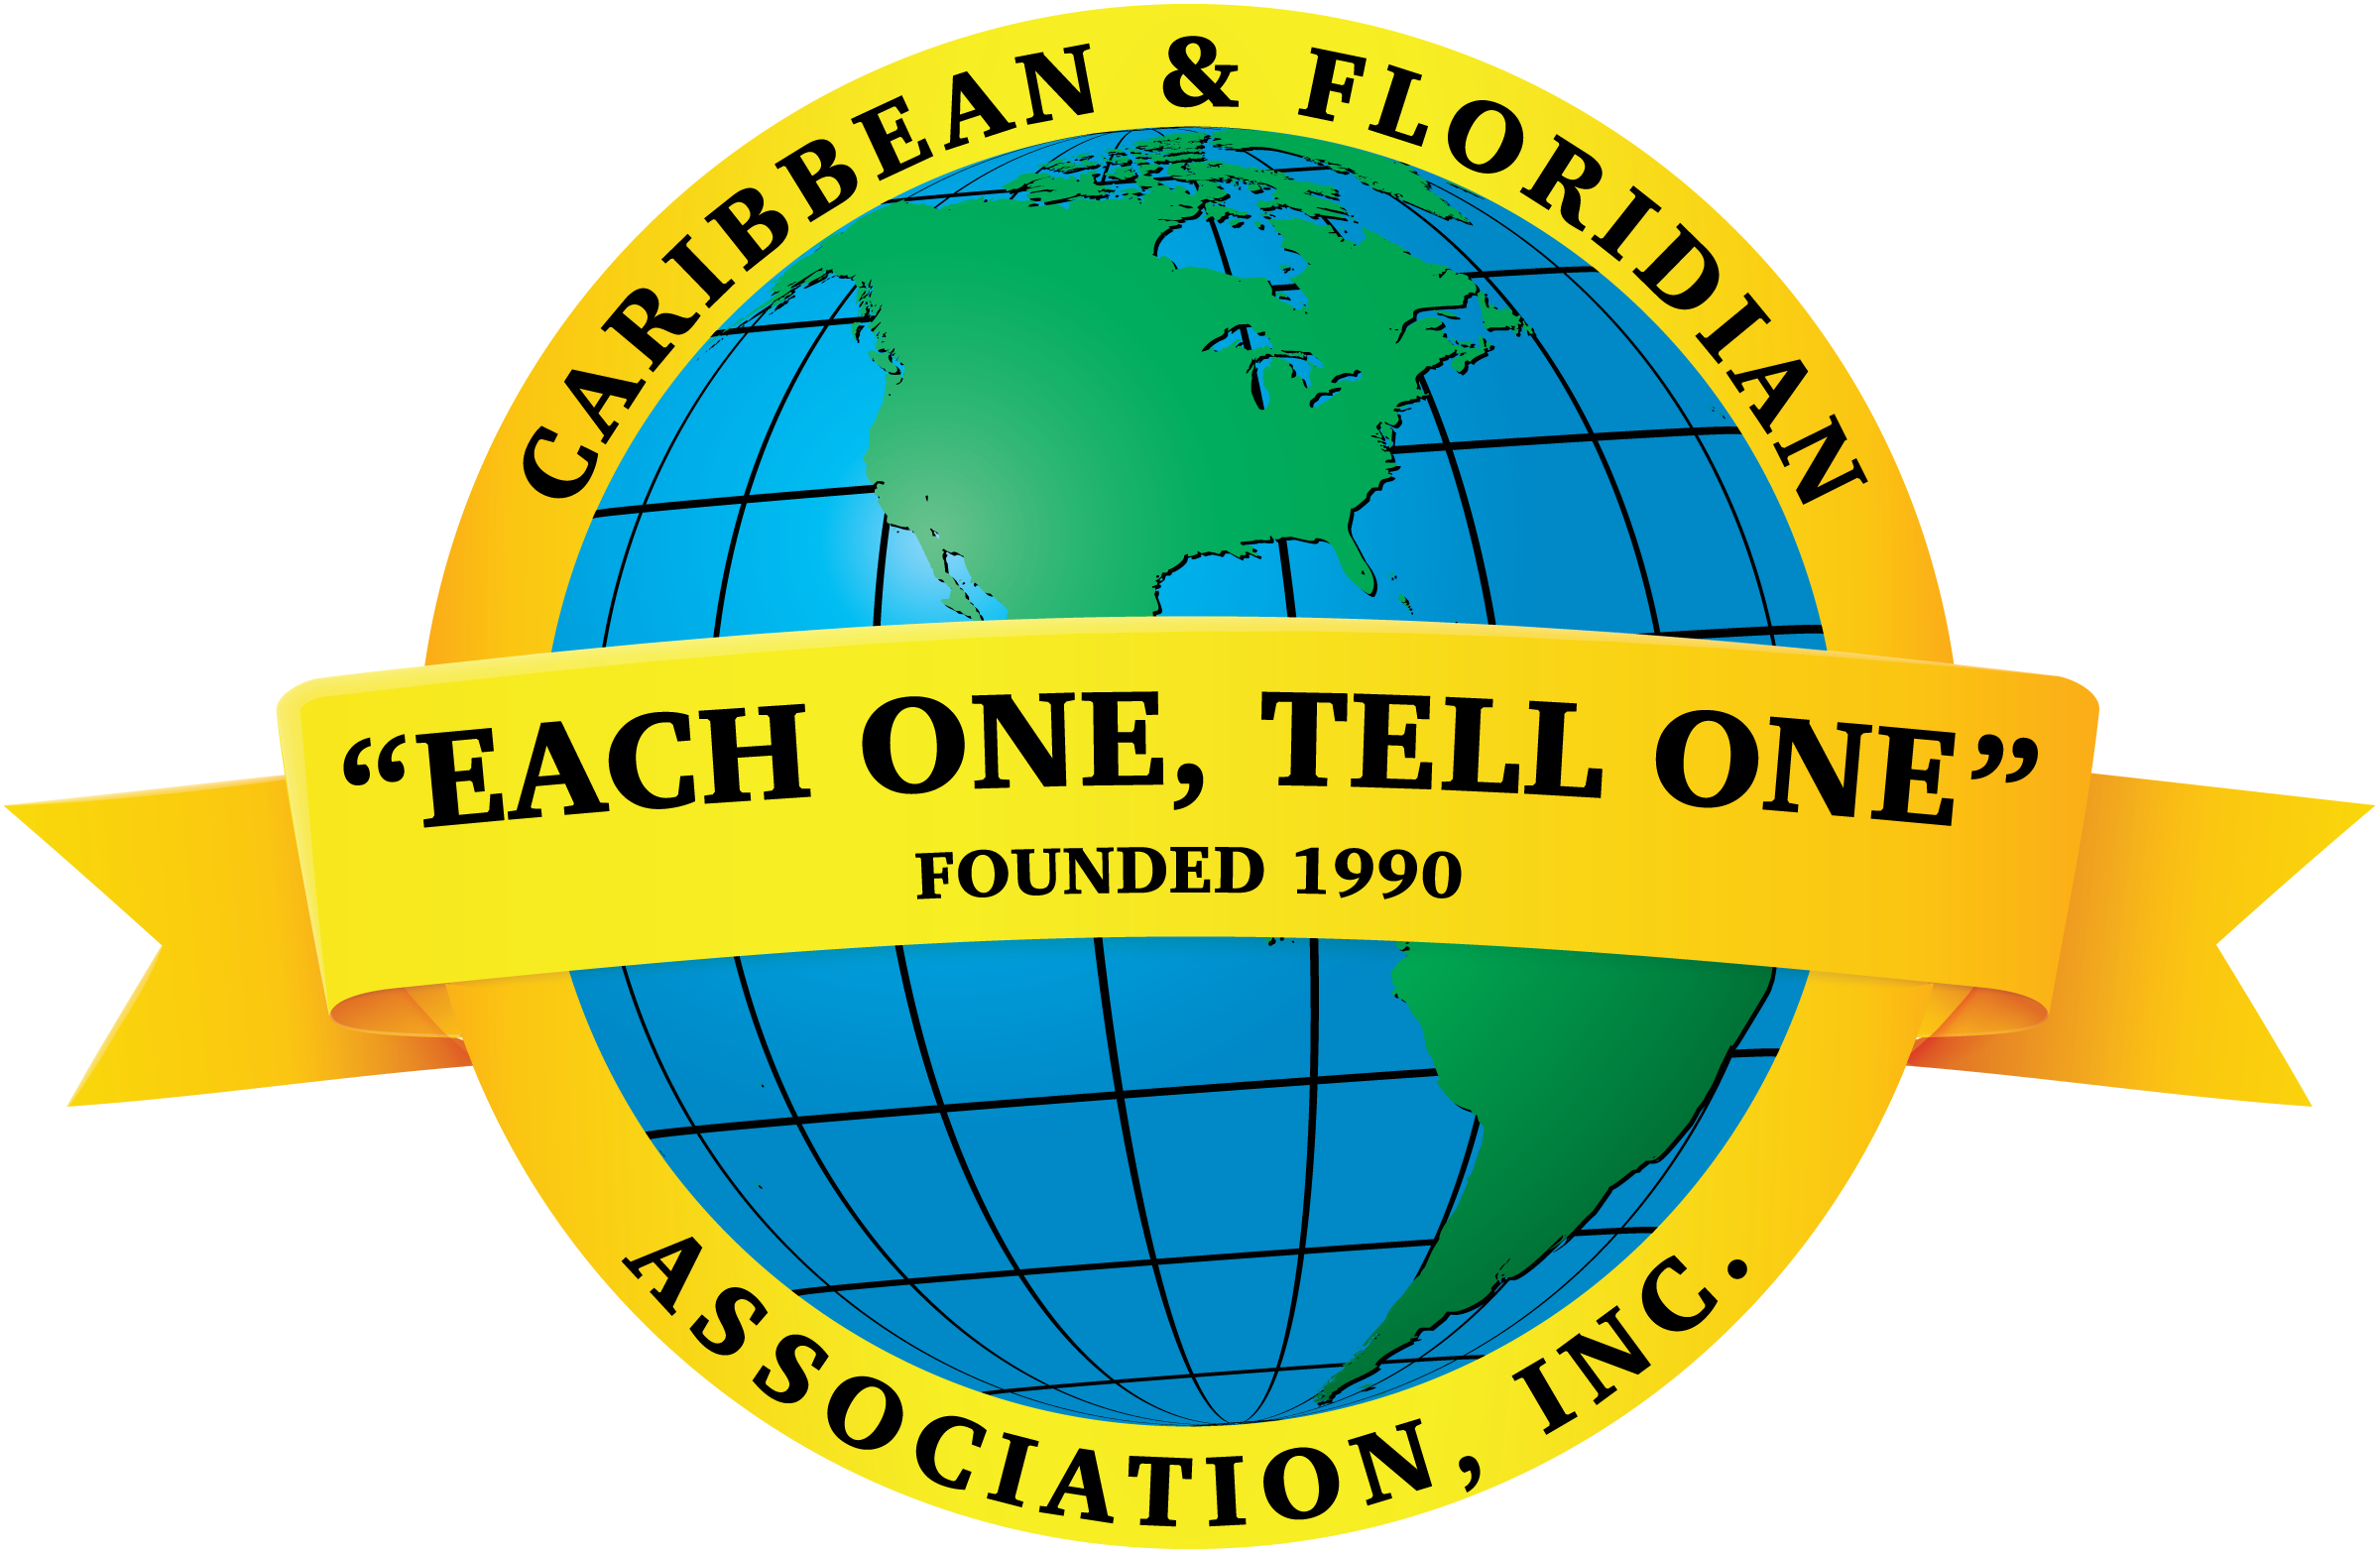 Caribbean And Floridian Association, Inc.